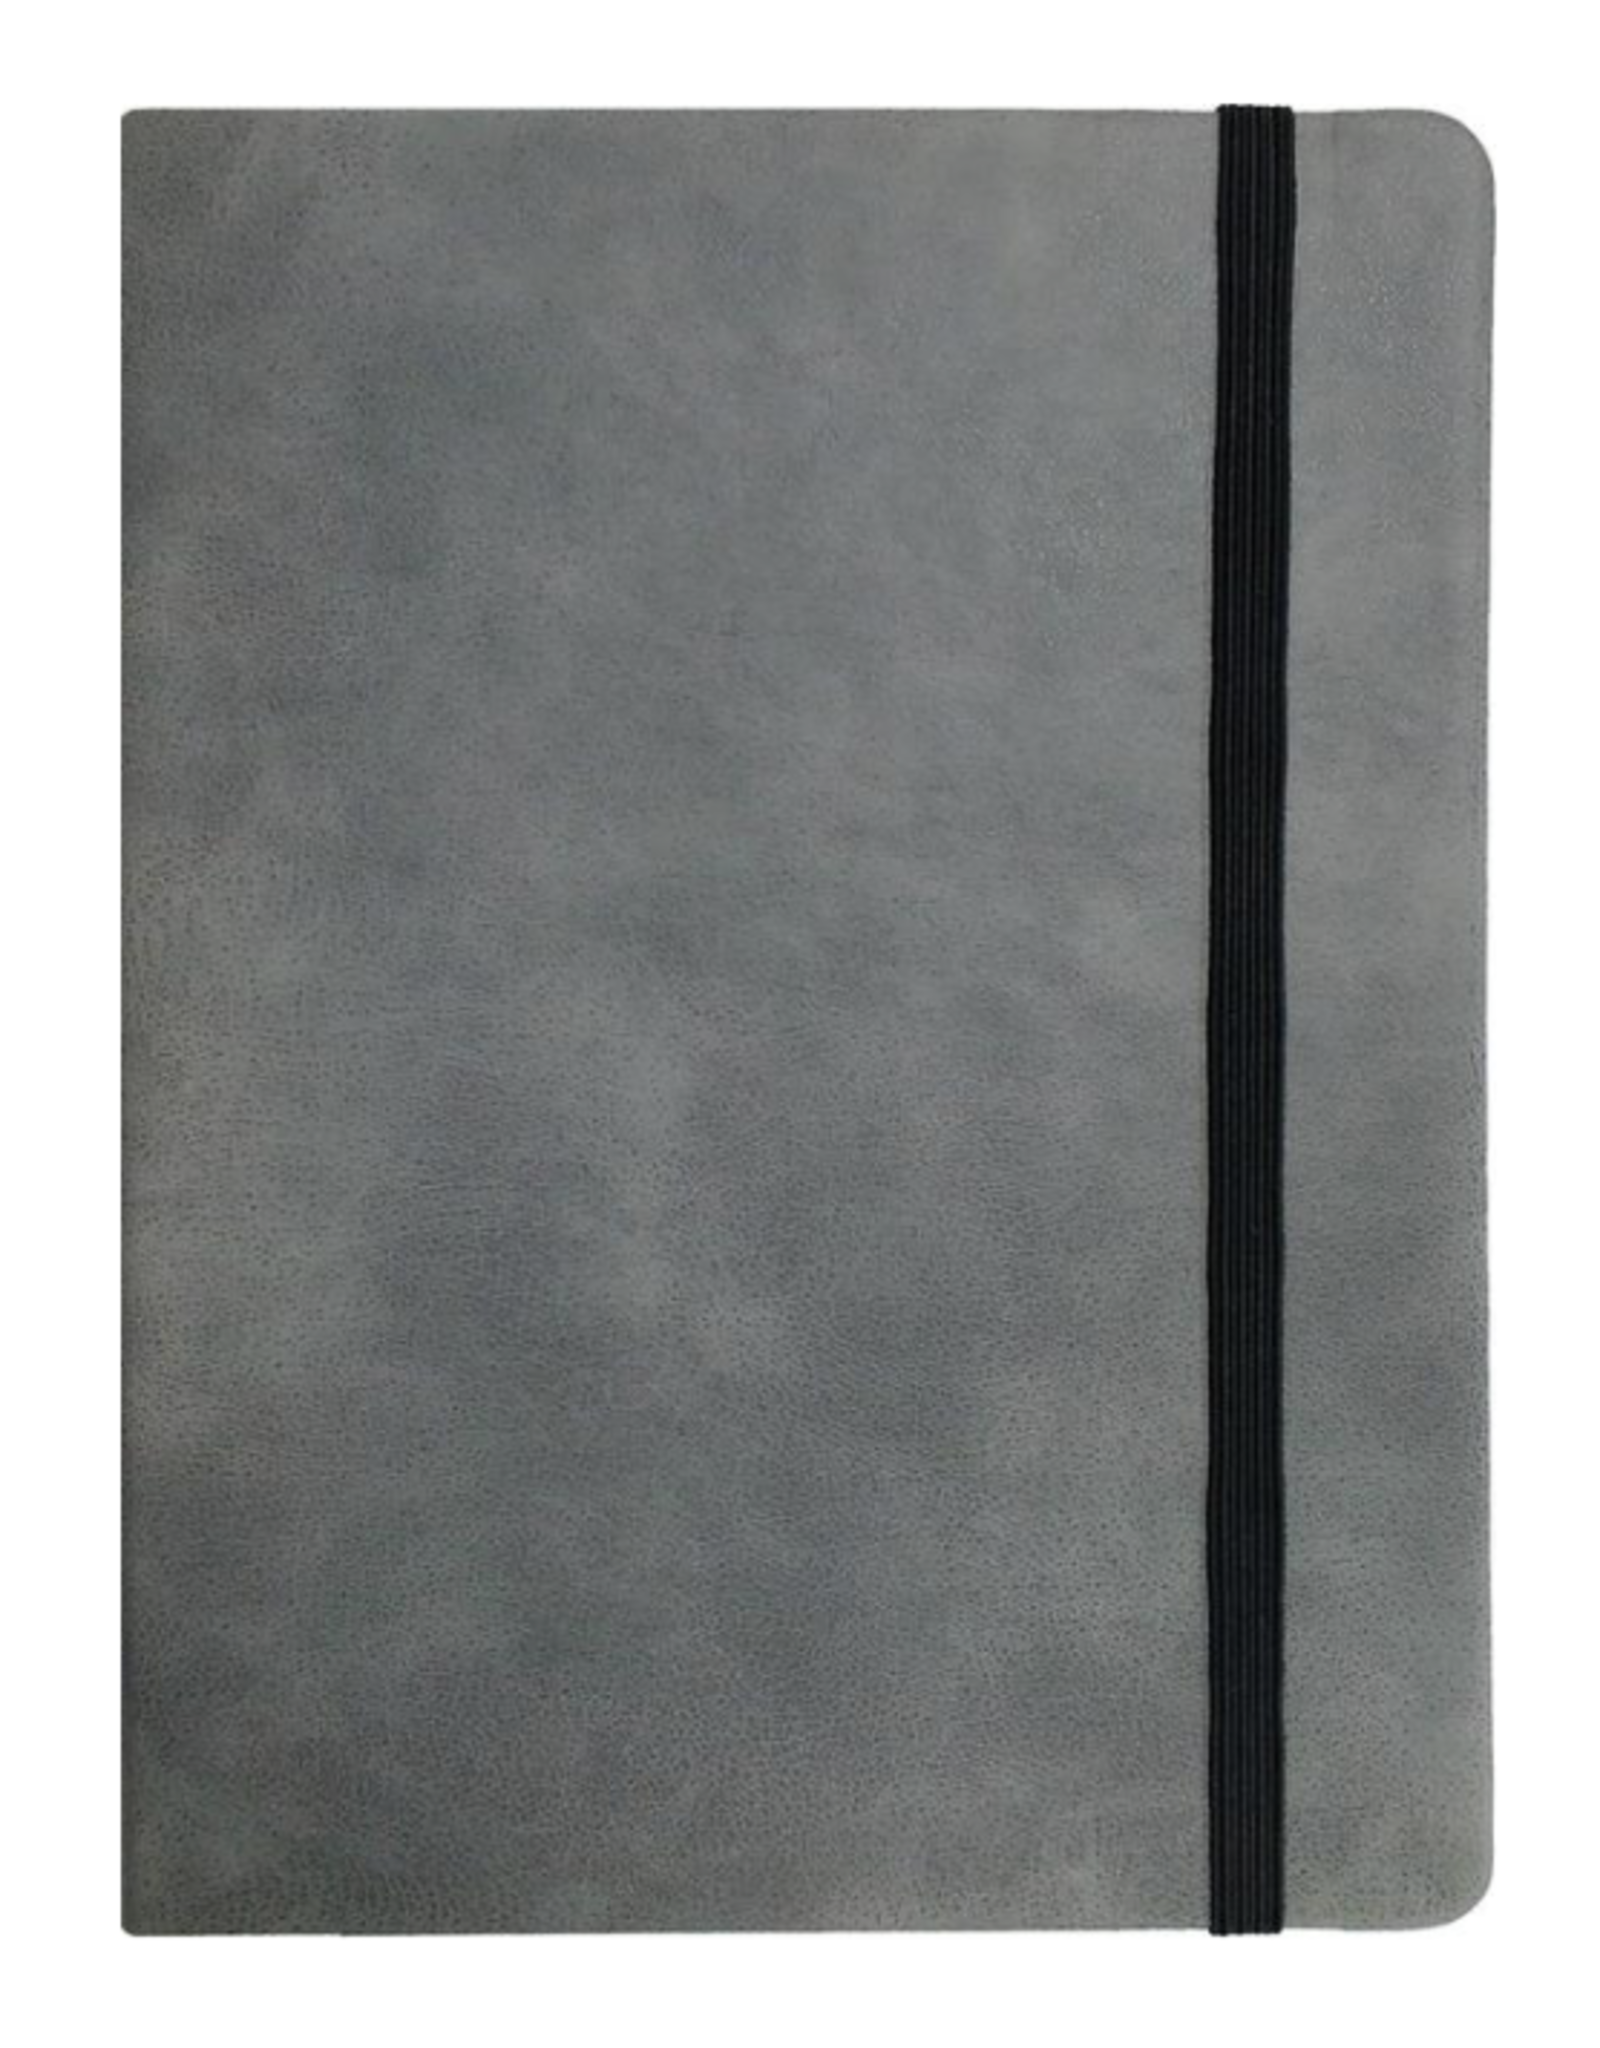 P Graham Dunn Gray Faux Leather Notebook SM